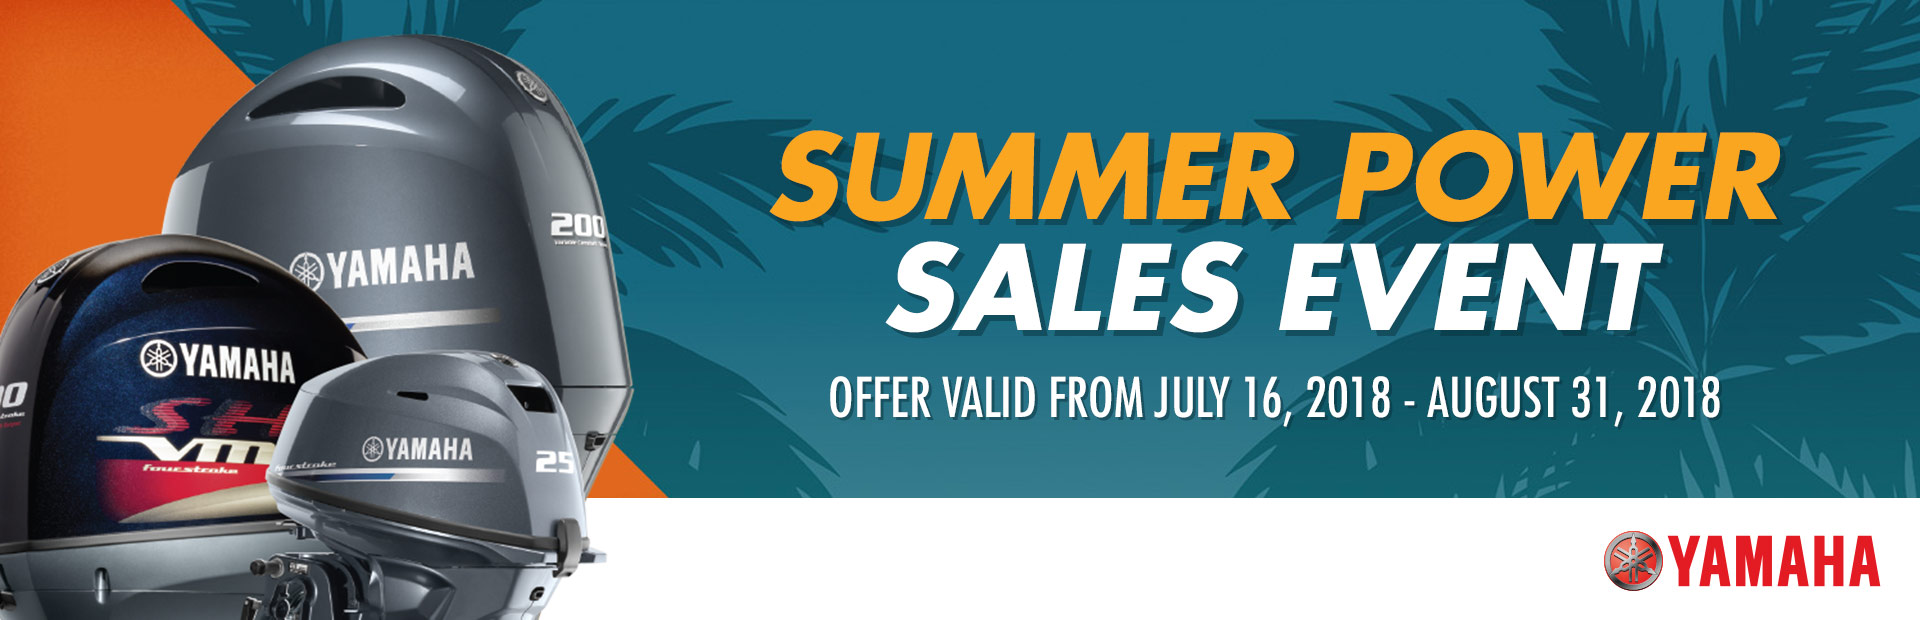 Yamaha: Summer Power Sales Event